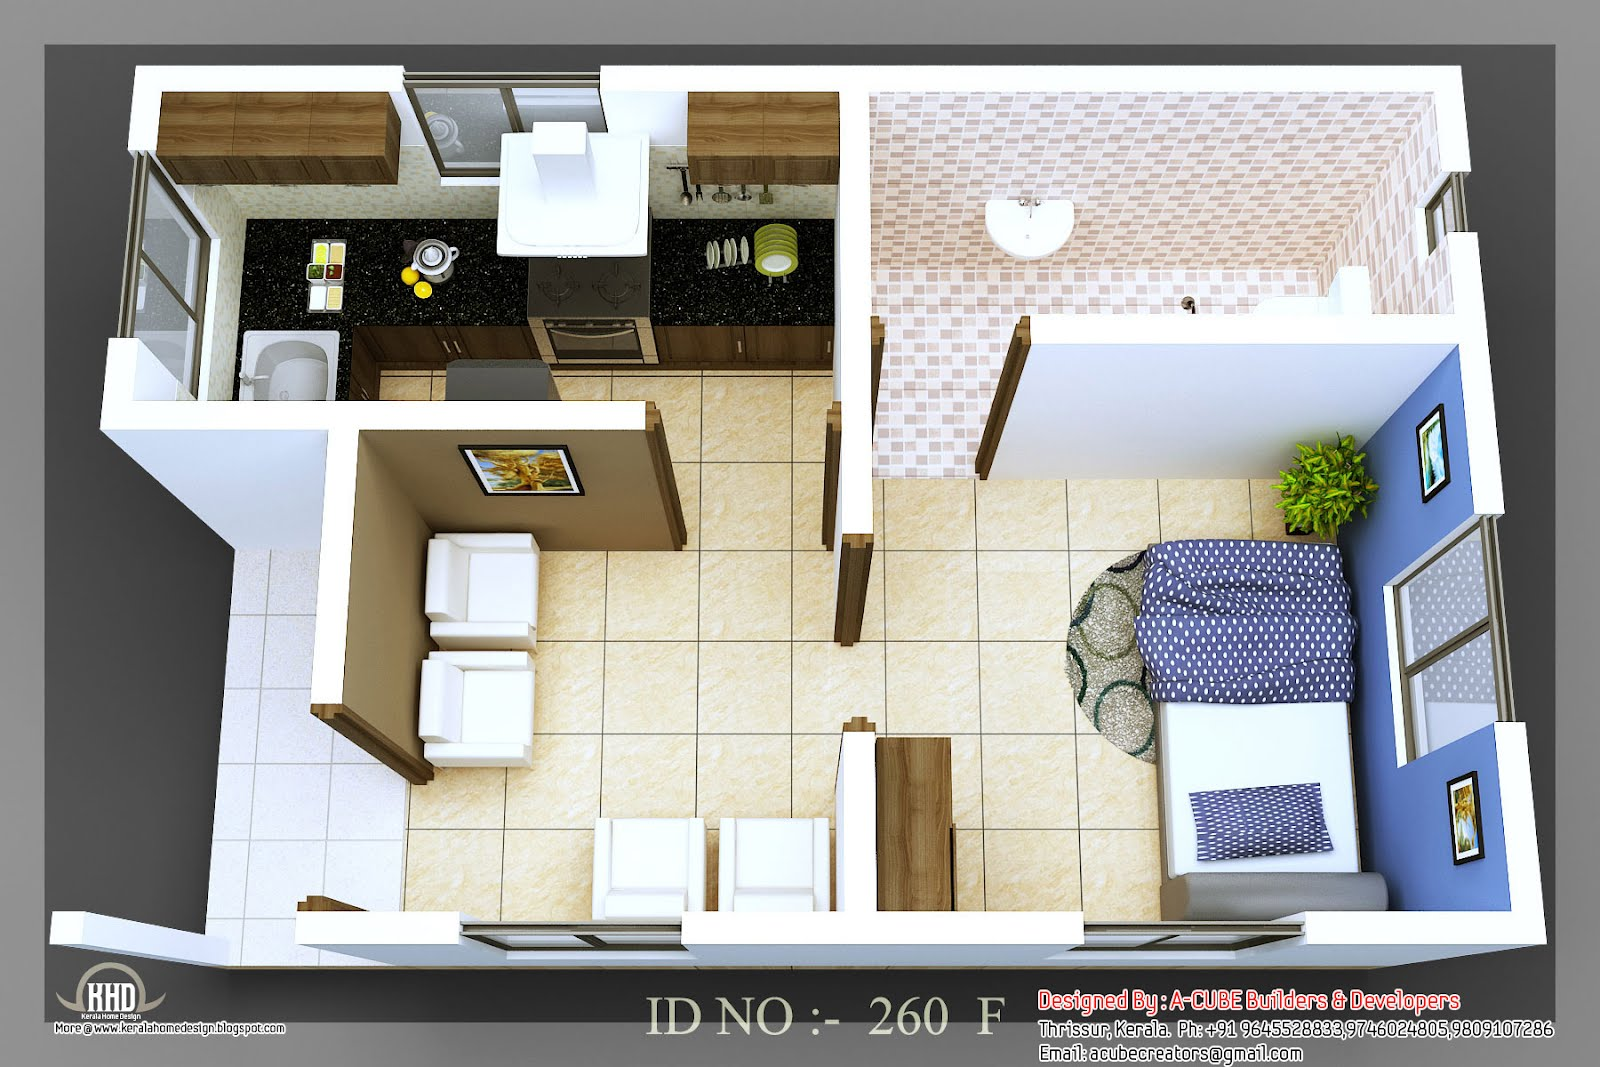 3d isometric views of small house plans kerala house design idea. Black Bedroom Furniture Sets. Home Design Ideas